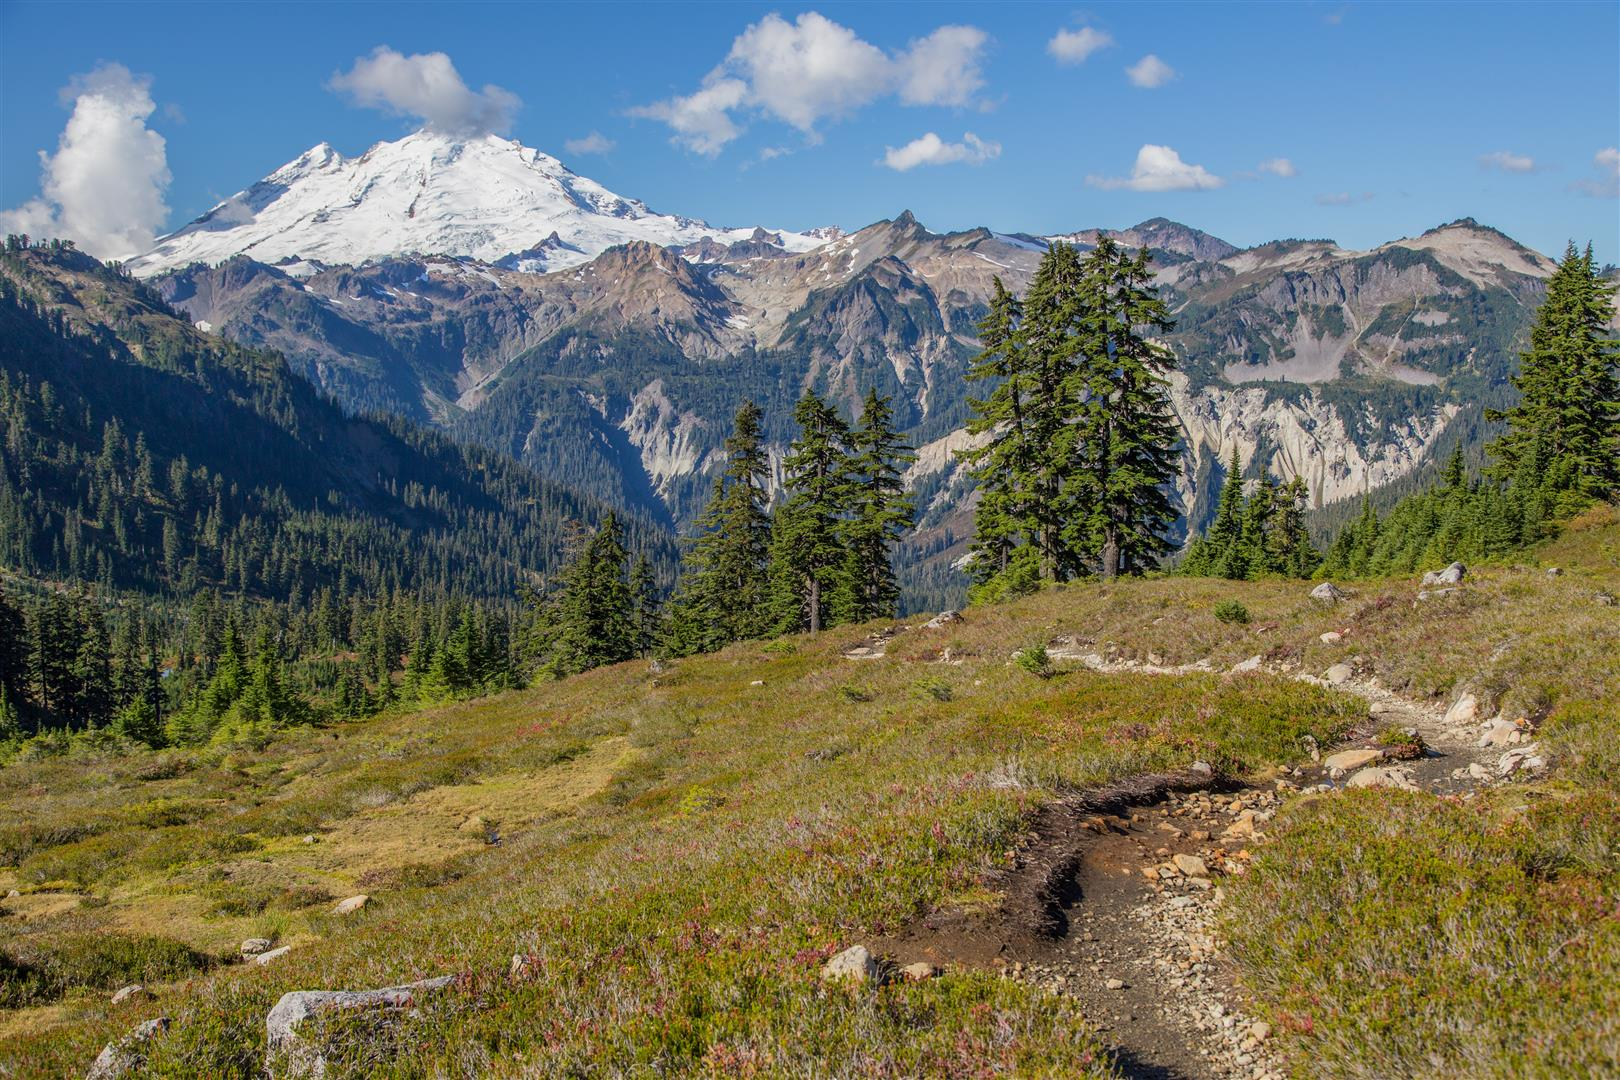 Trail and Mt. Baker